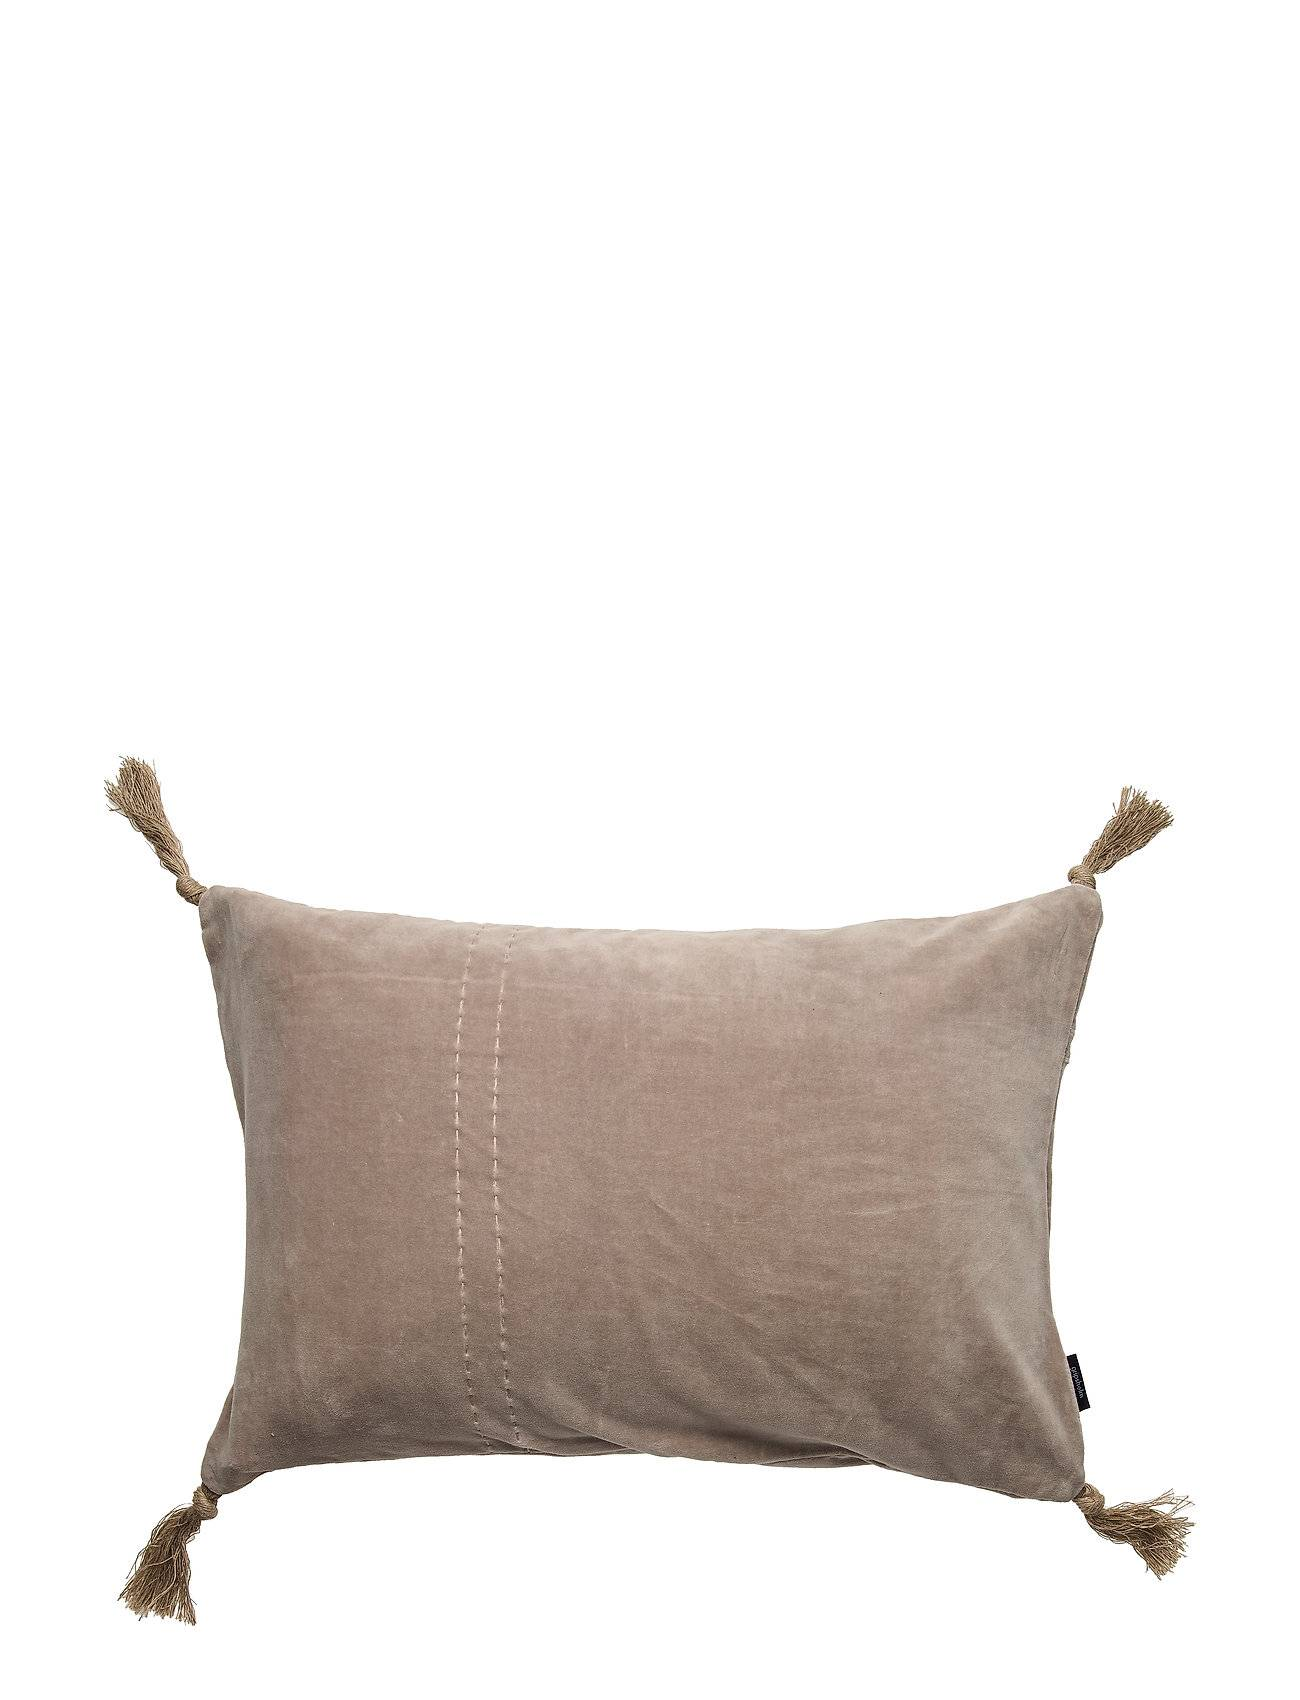 Gripsholm Cushion Cover August Gots Pussilakana Beige Gripsholm